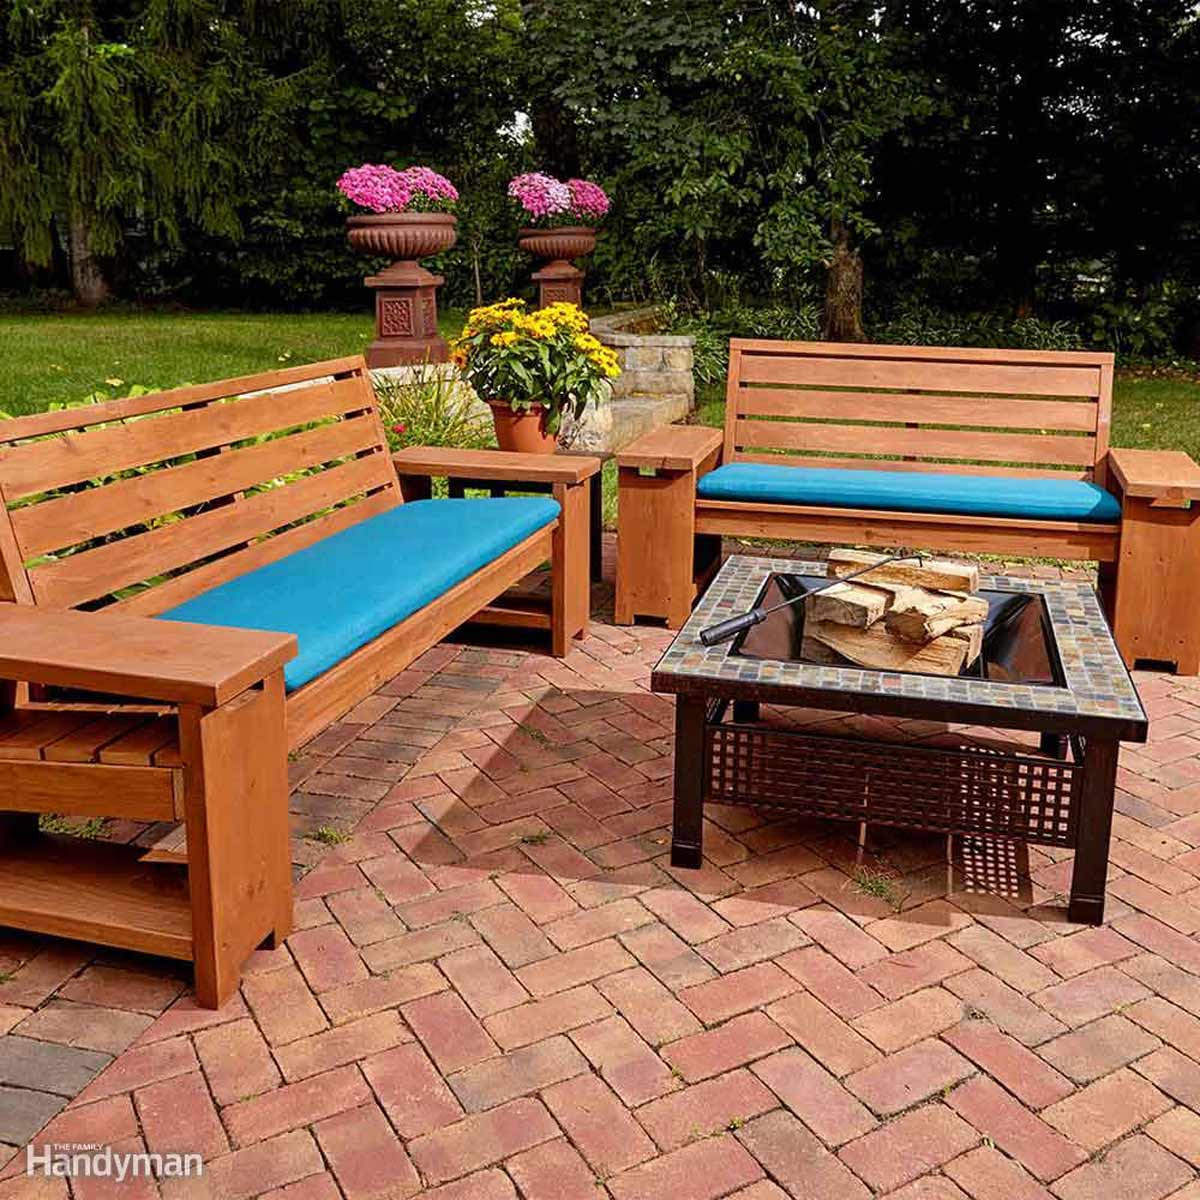 Best ideas about Diy Patio Bench . Save or Pin 15 Awesome Plans for DIY Patio Furniture Now.